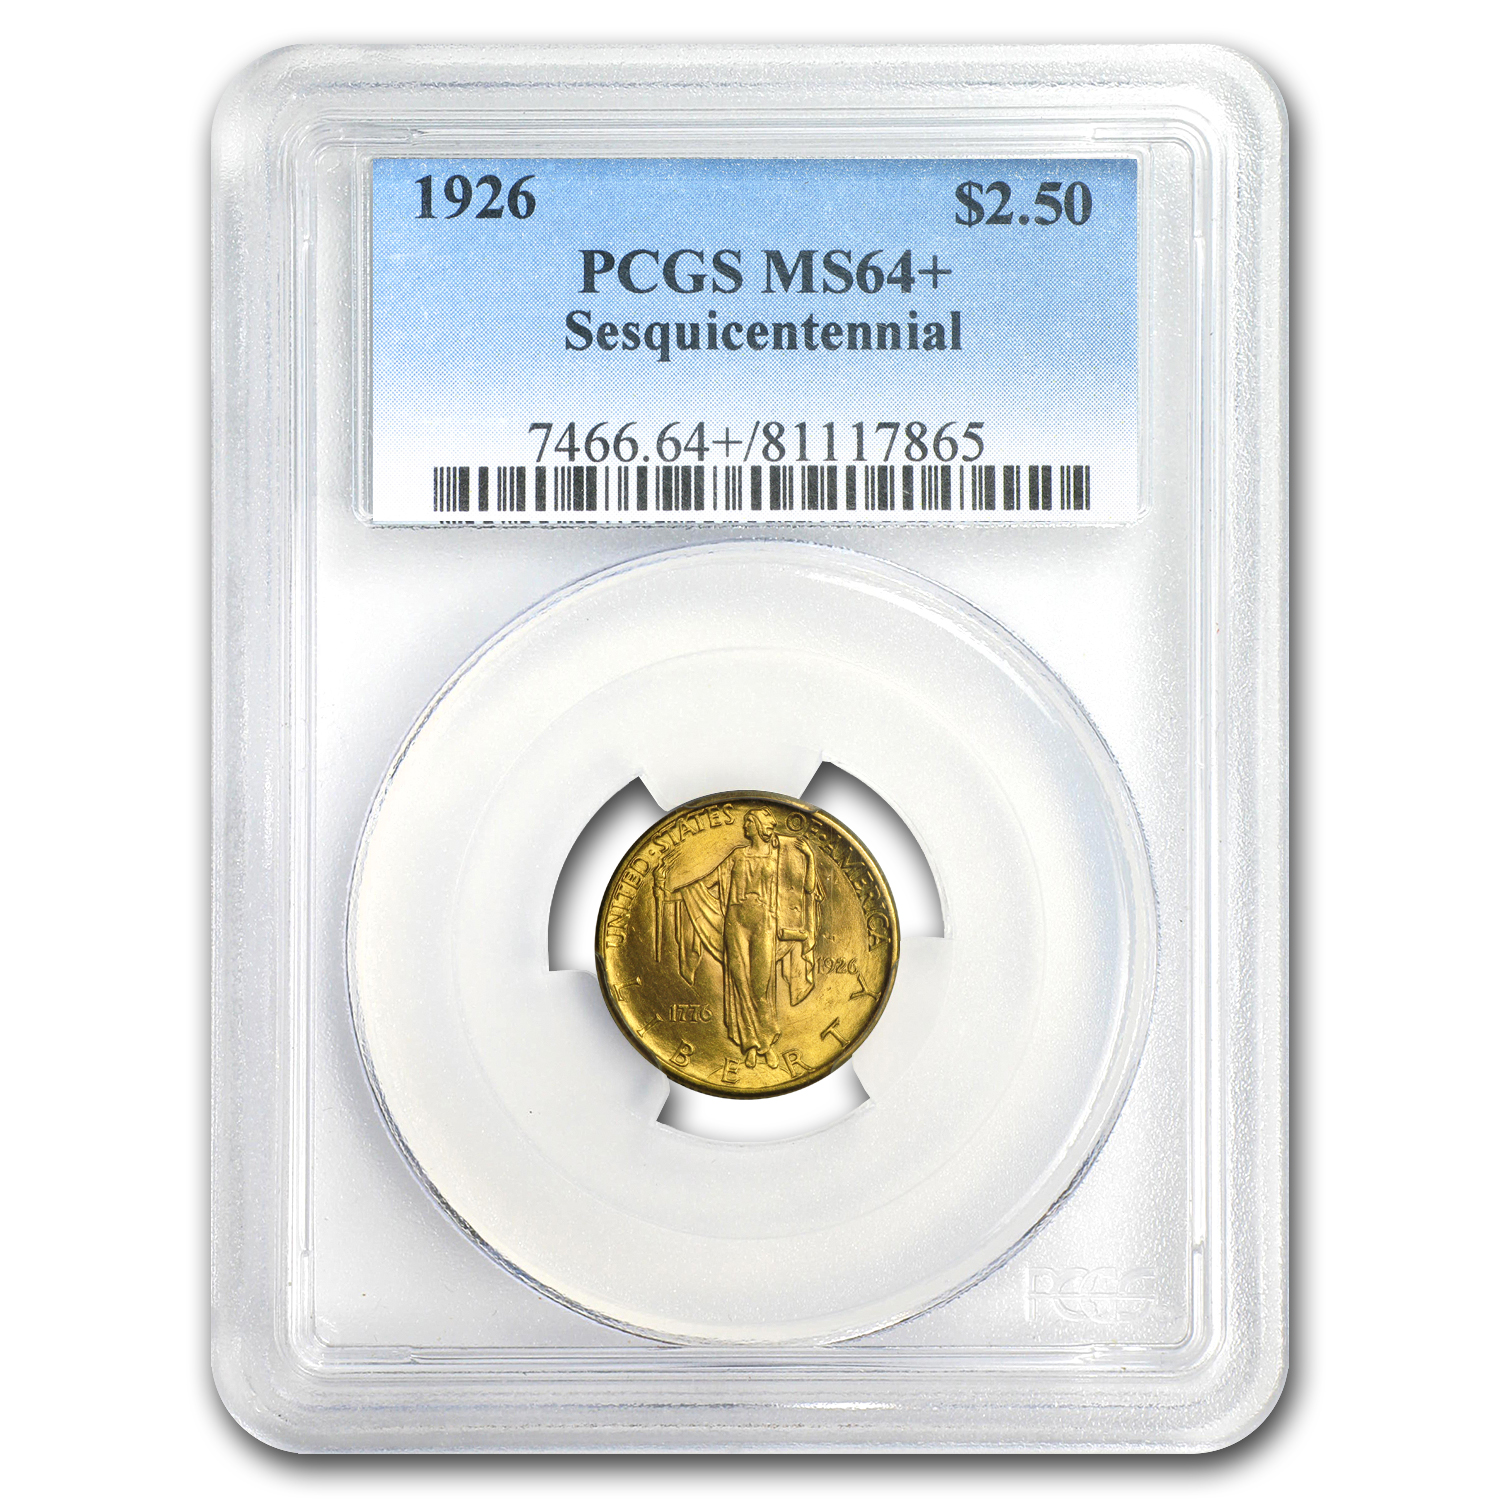 1926 Gold $2.50 America Sesquicentennial MS-64+ PCGS